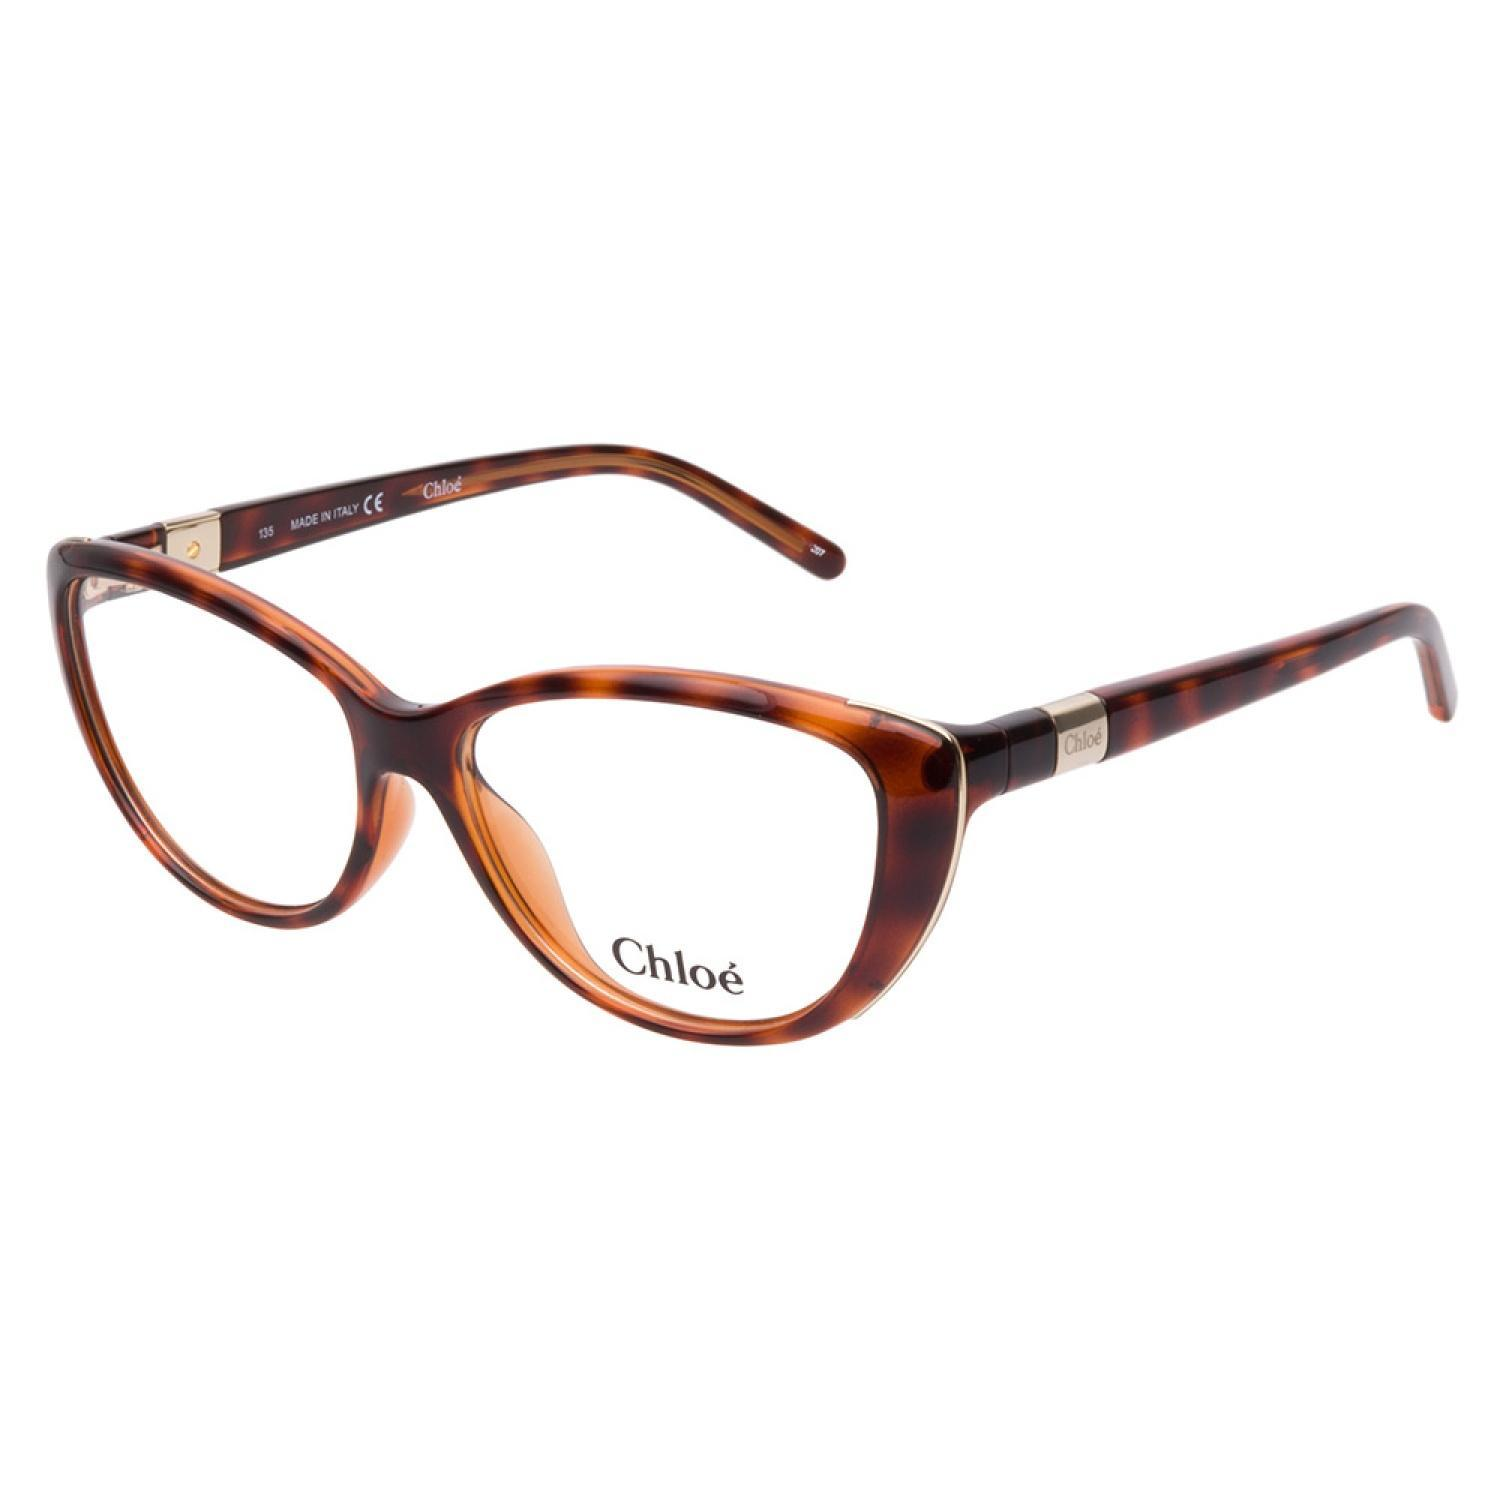 60d2278d670 Shop Chloe CE2601 219 Tortoise Prescription Eyeglasses - Free Shipping  Today - Overstock.com - 10471428